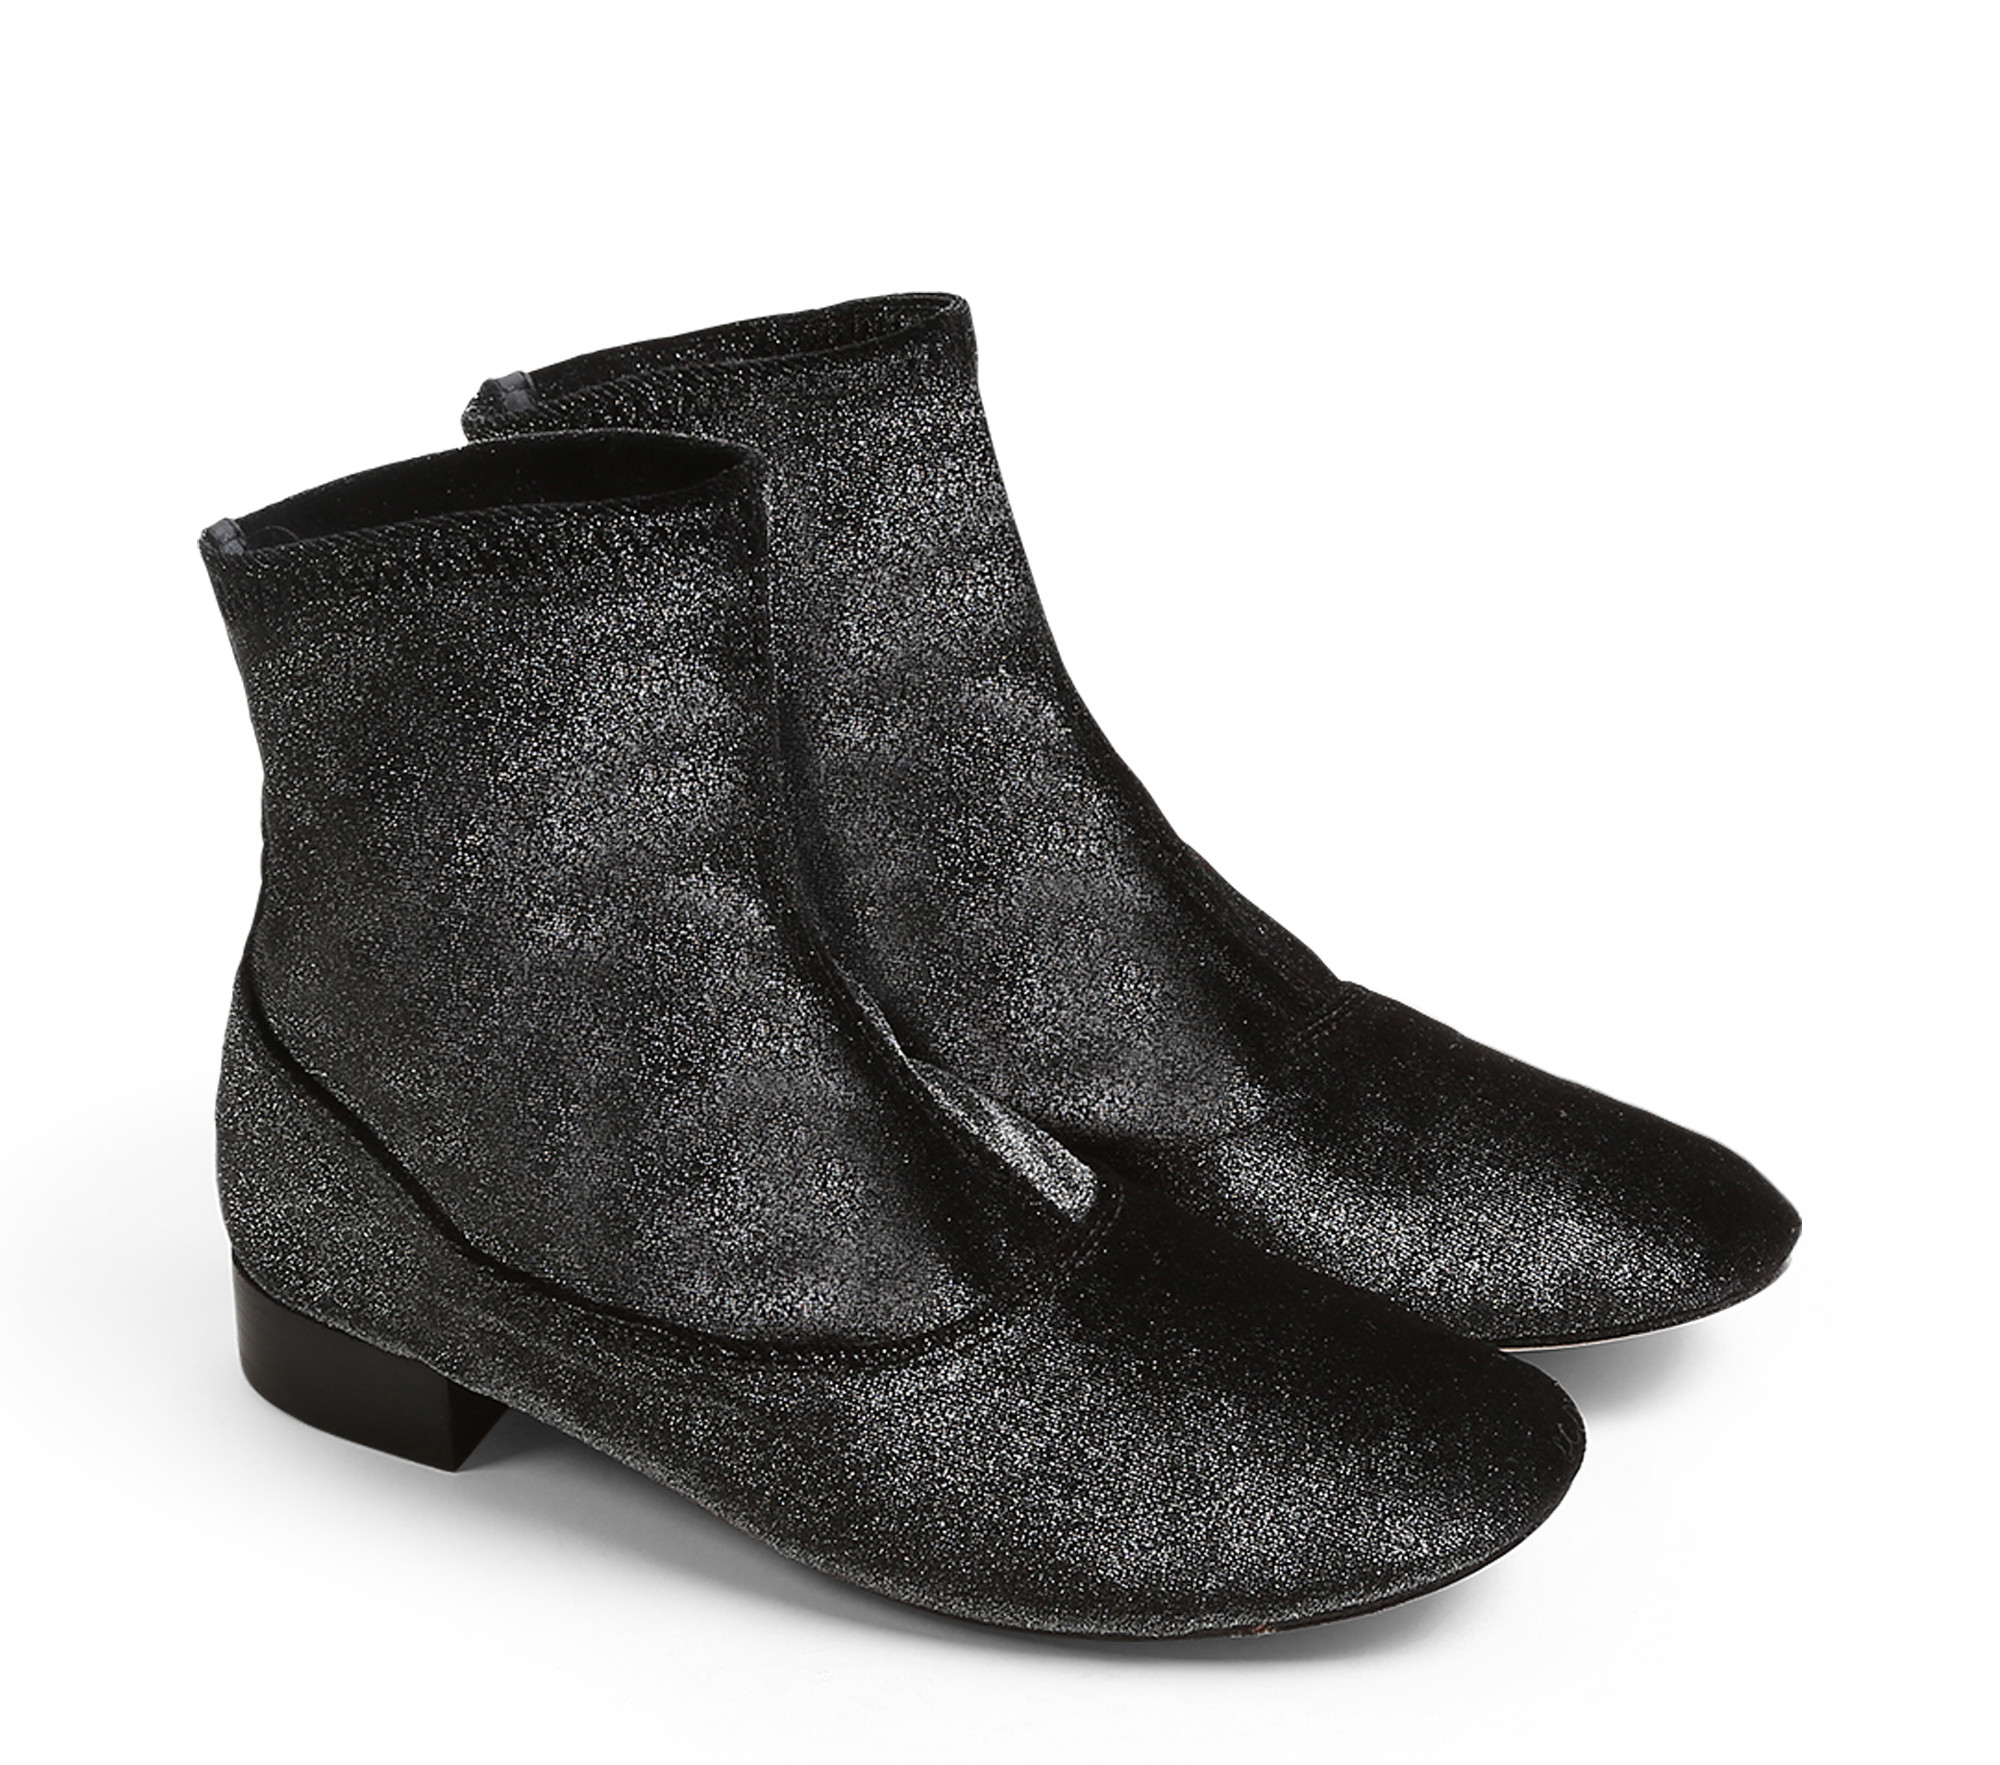 Judith ankle boots